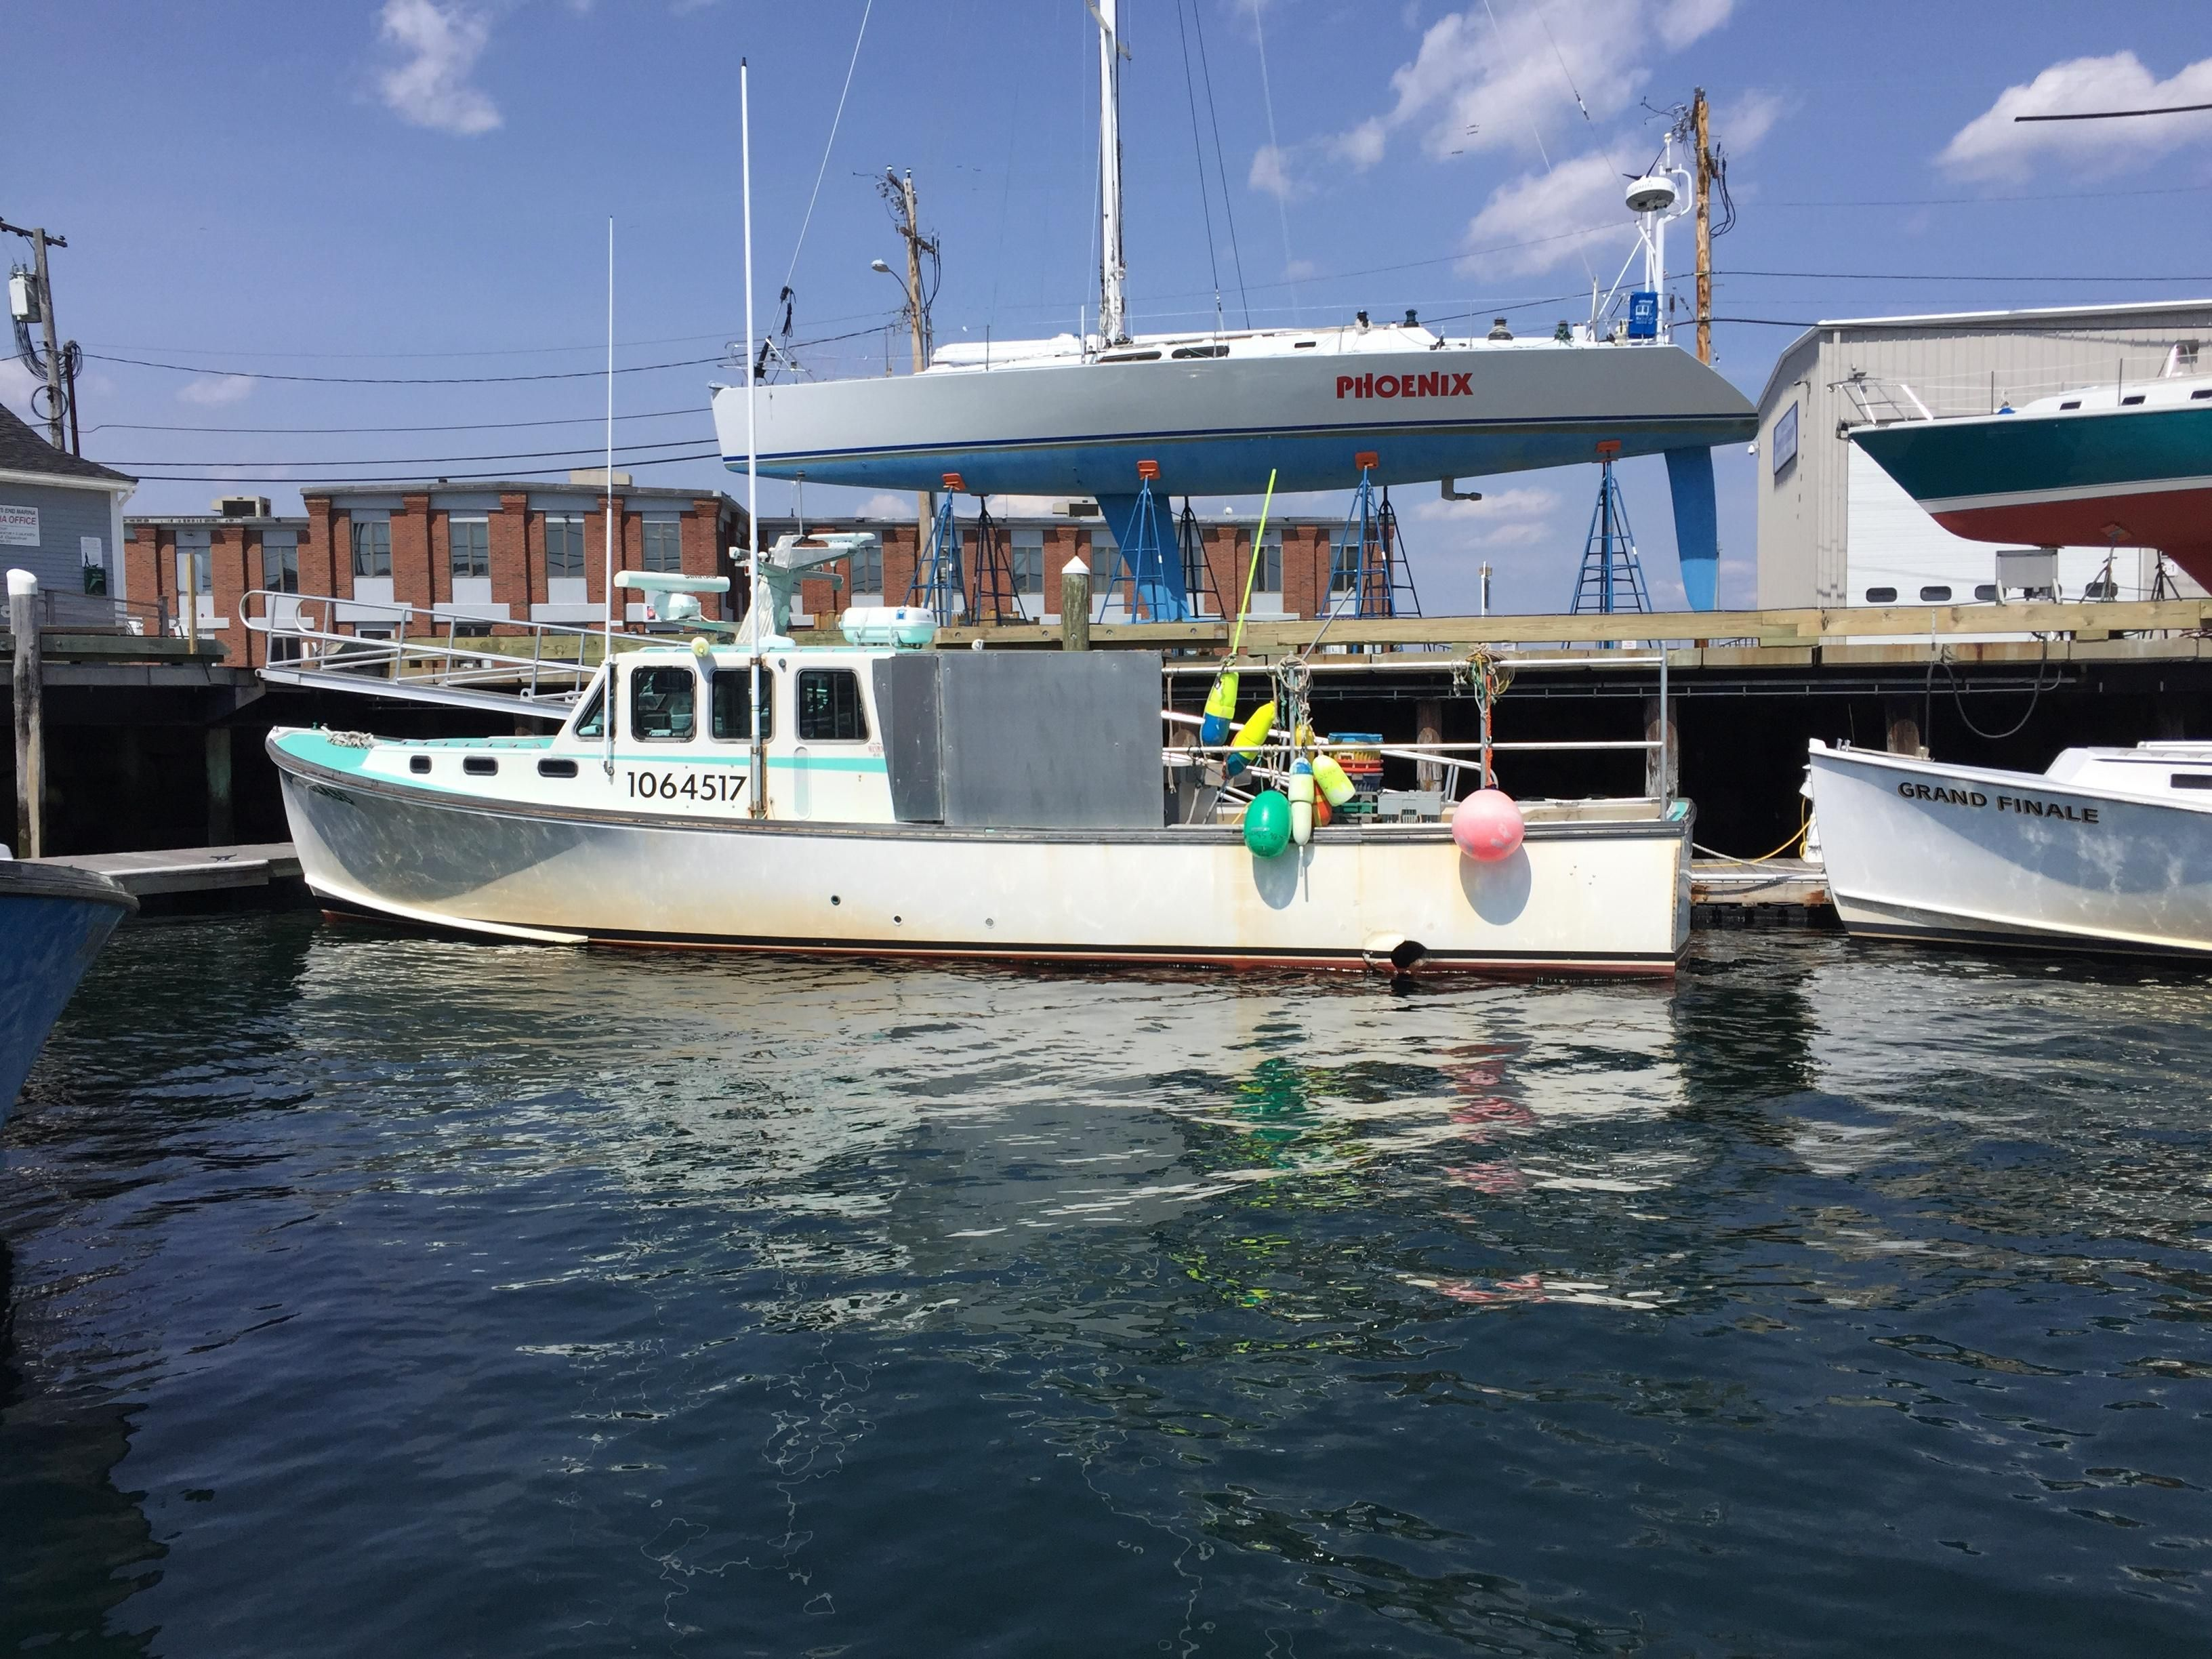 1998 wesmac lobster fishing boat power boat for sale www for Fishing boat dealers near me